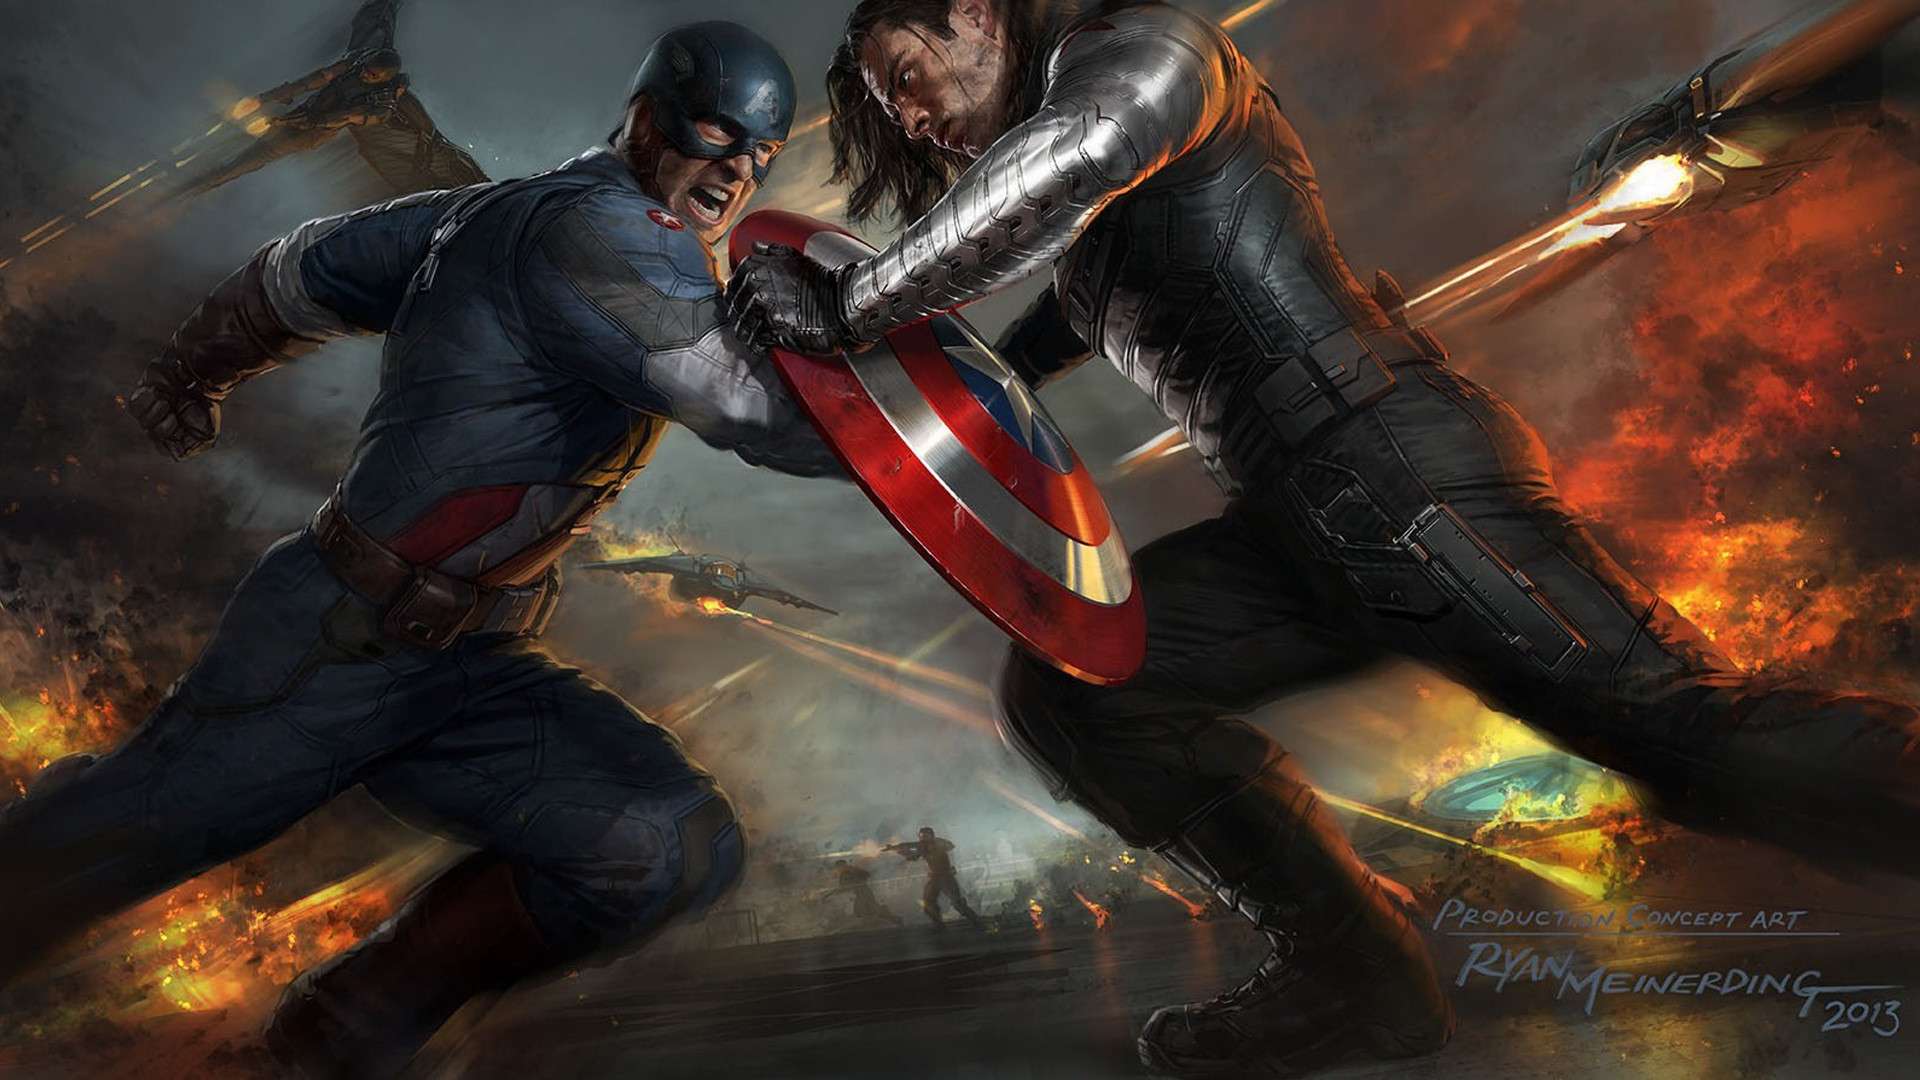 1920x1080 Captain America The Winter Soldier Artwork Wallpapers | HD Wallpapers